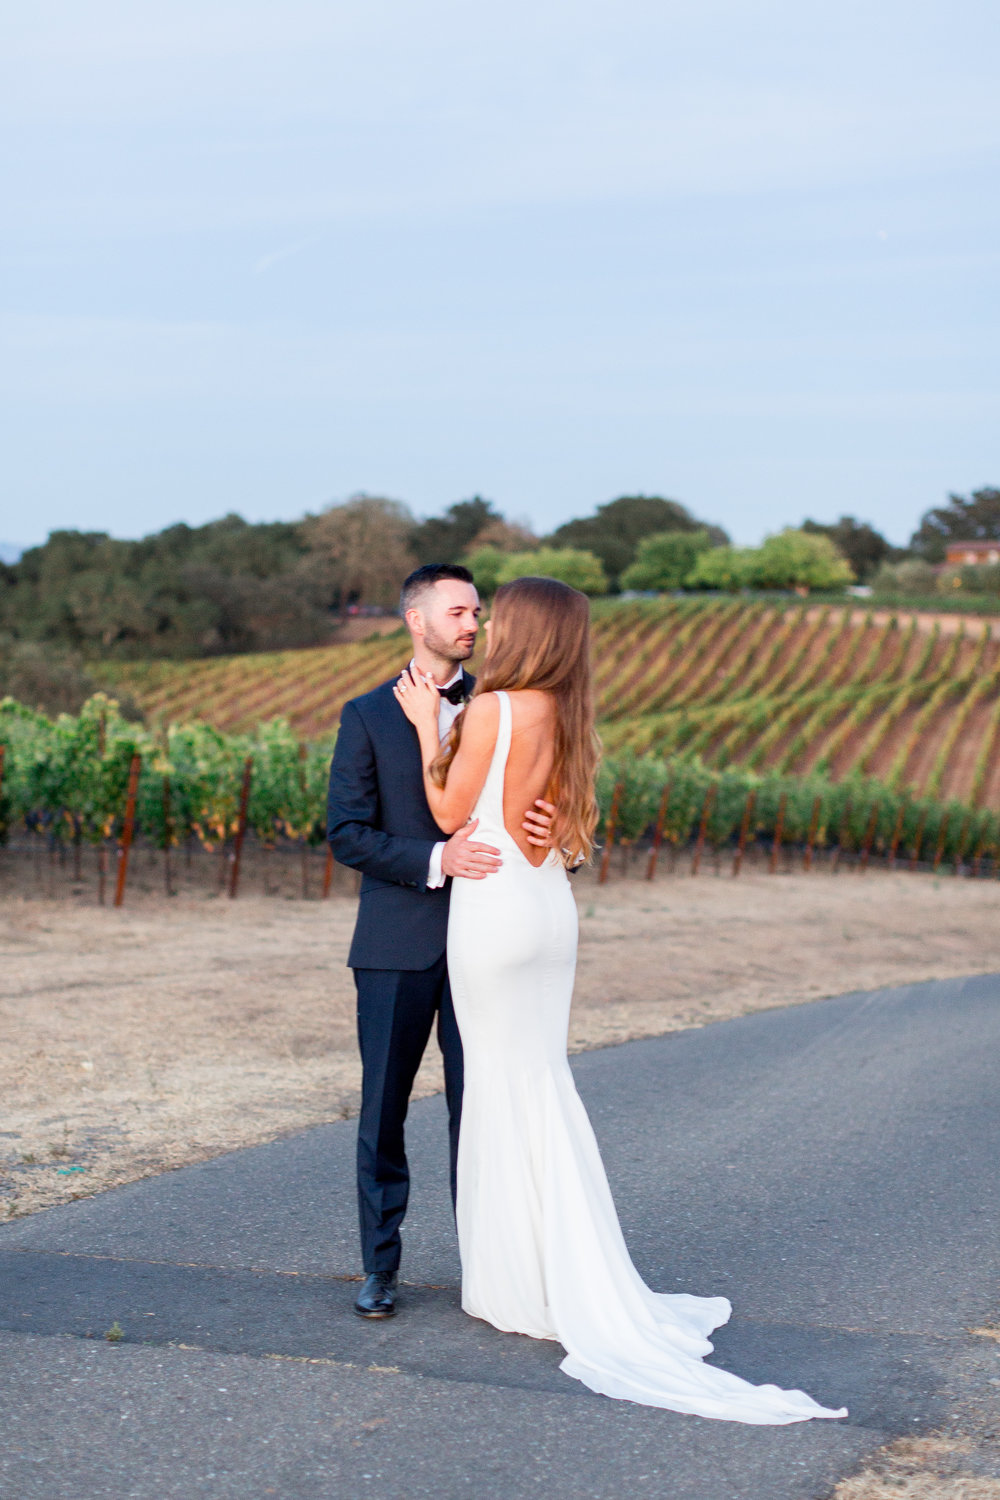 Calegari-Vineyards-Healdsburg-Wedding-Photographer (246 of 262).jpg